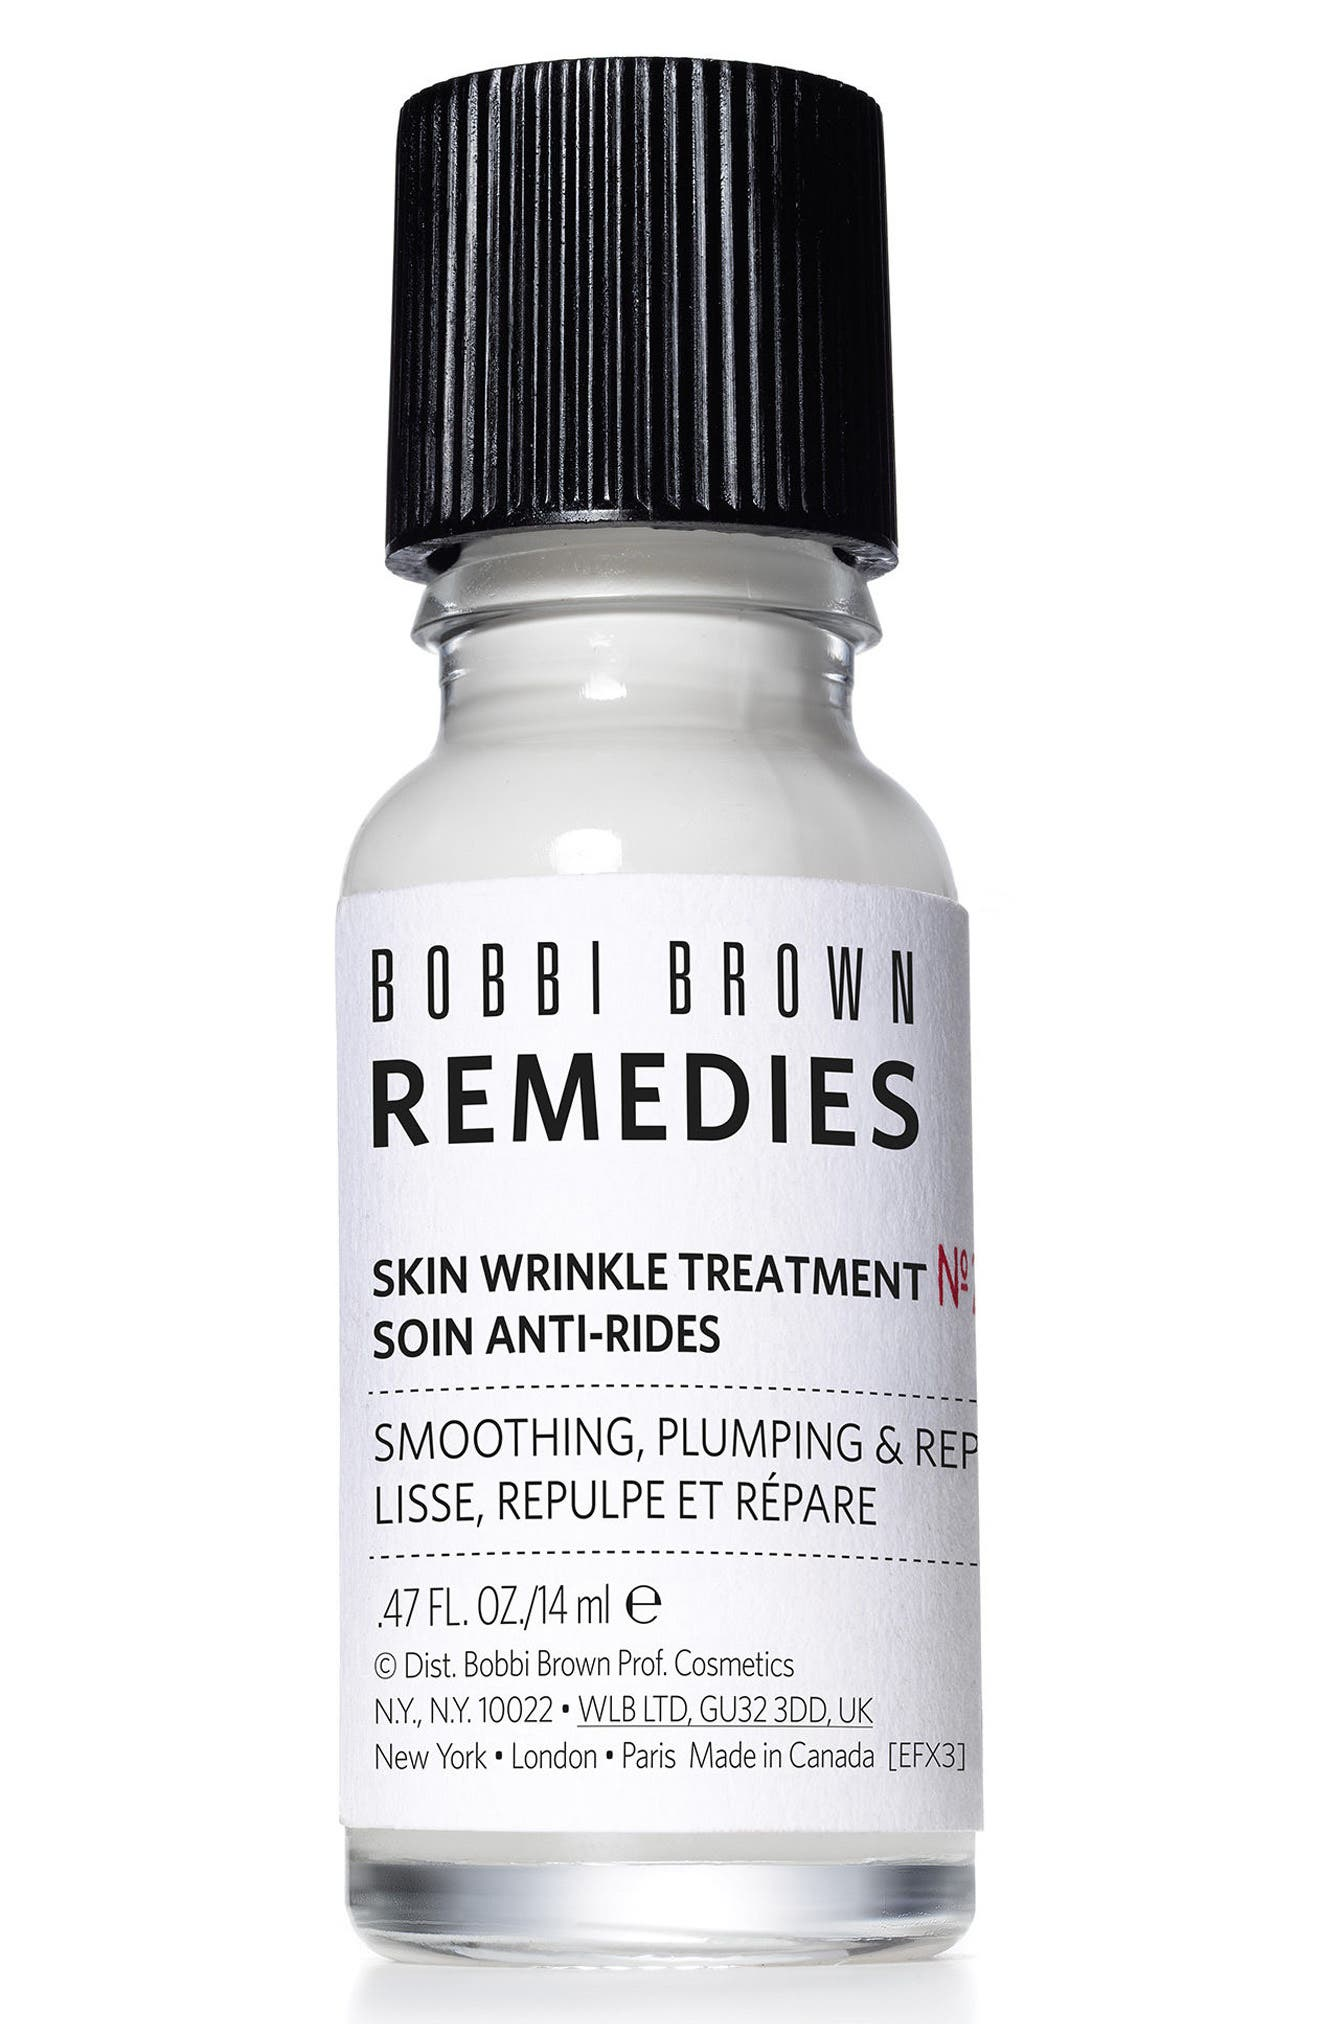 Bobbi Brown Skin Wrinkle Treatment 25 Smoothing, Plumping & Repair